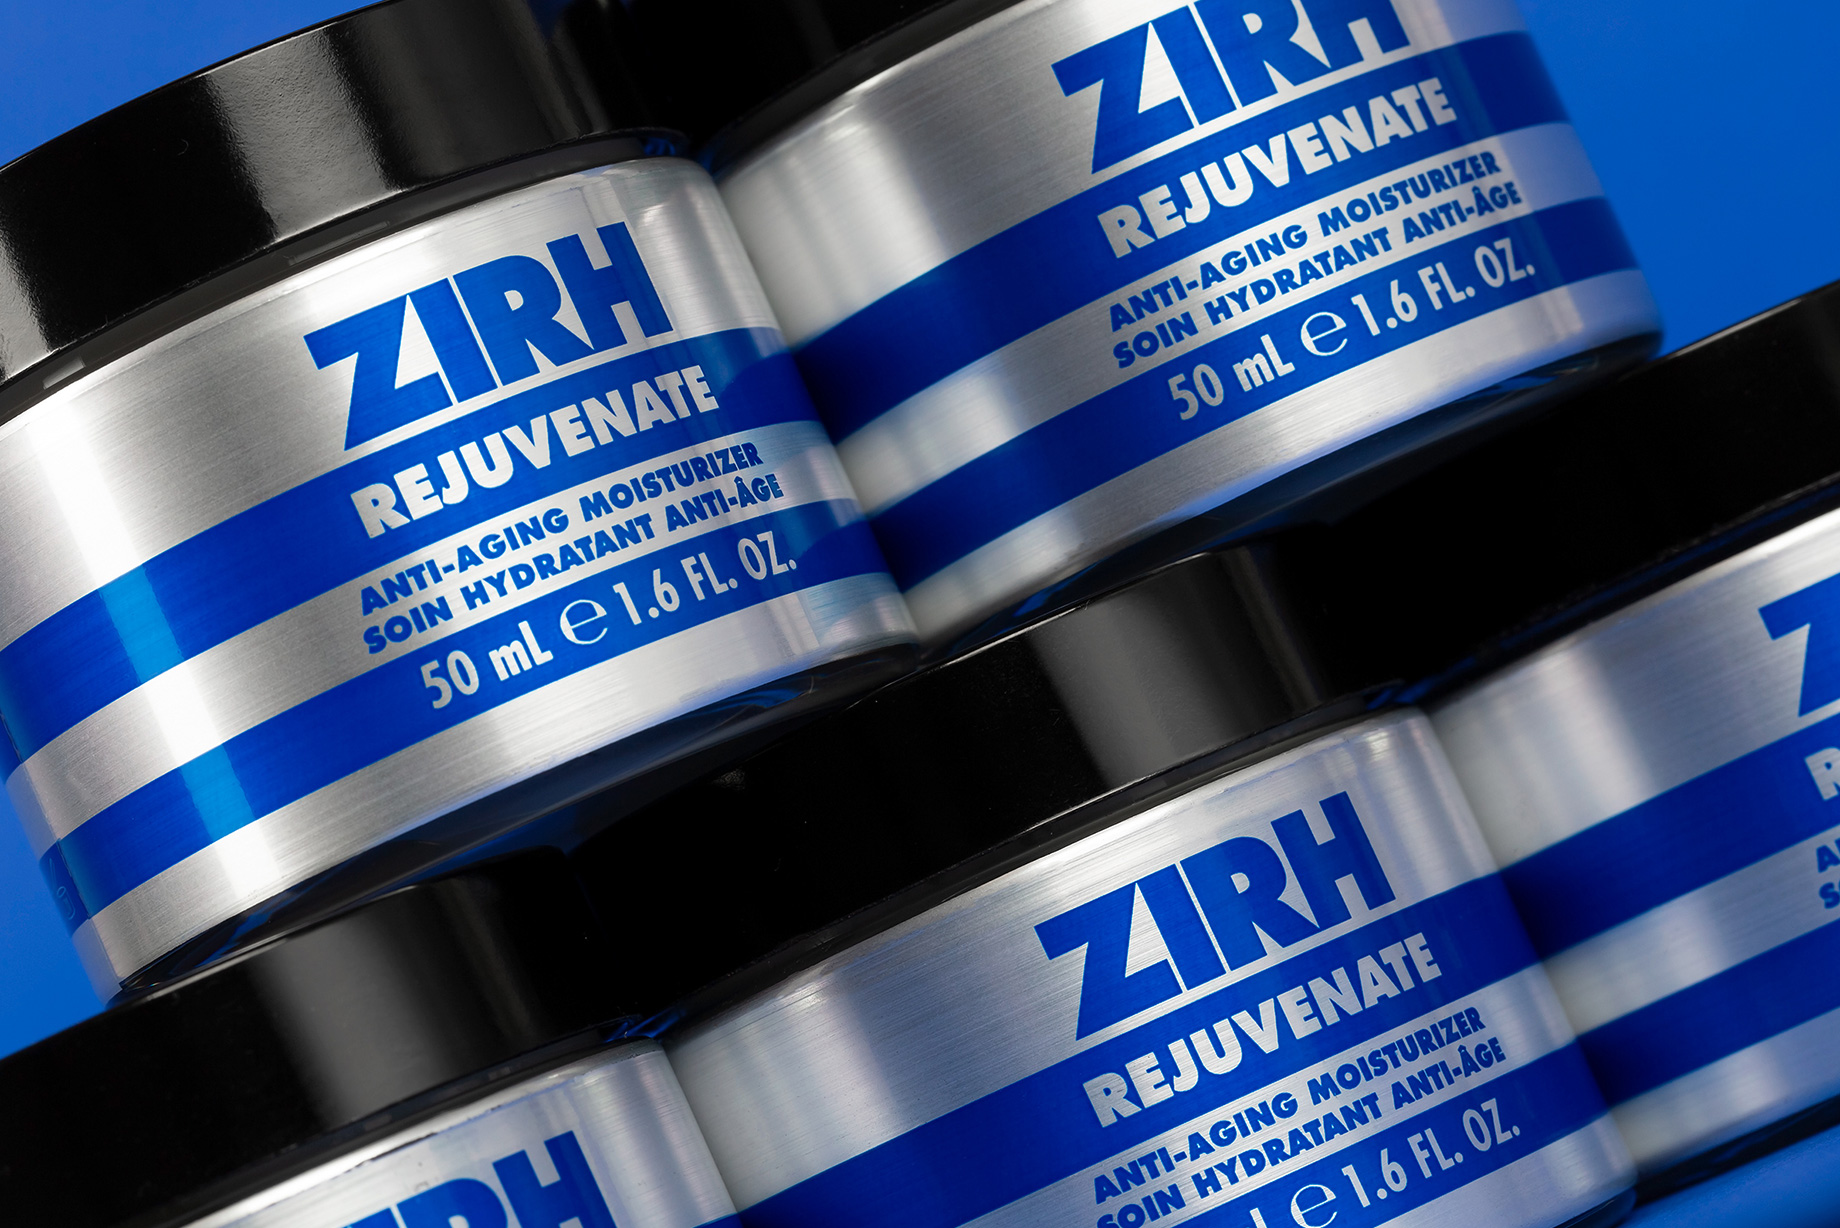 Zirh's Best Grooming Products to Try Now